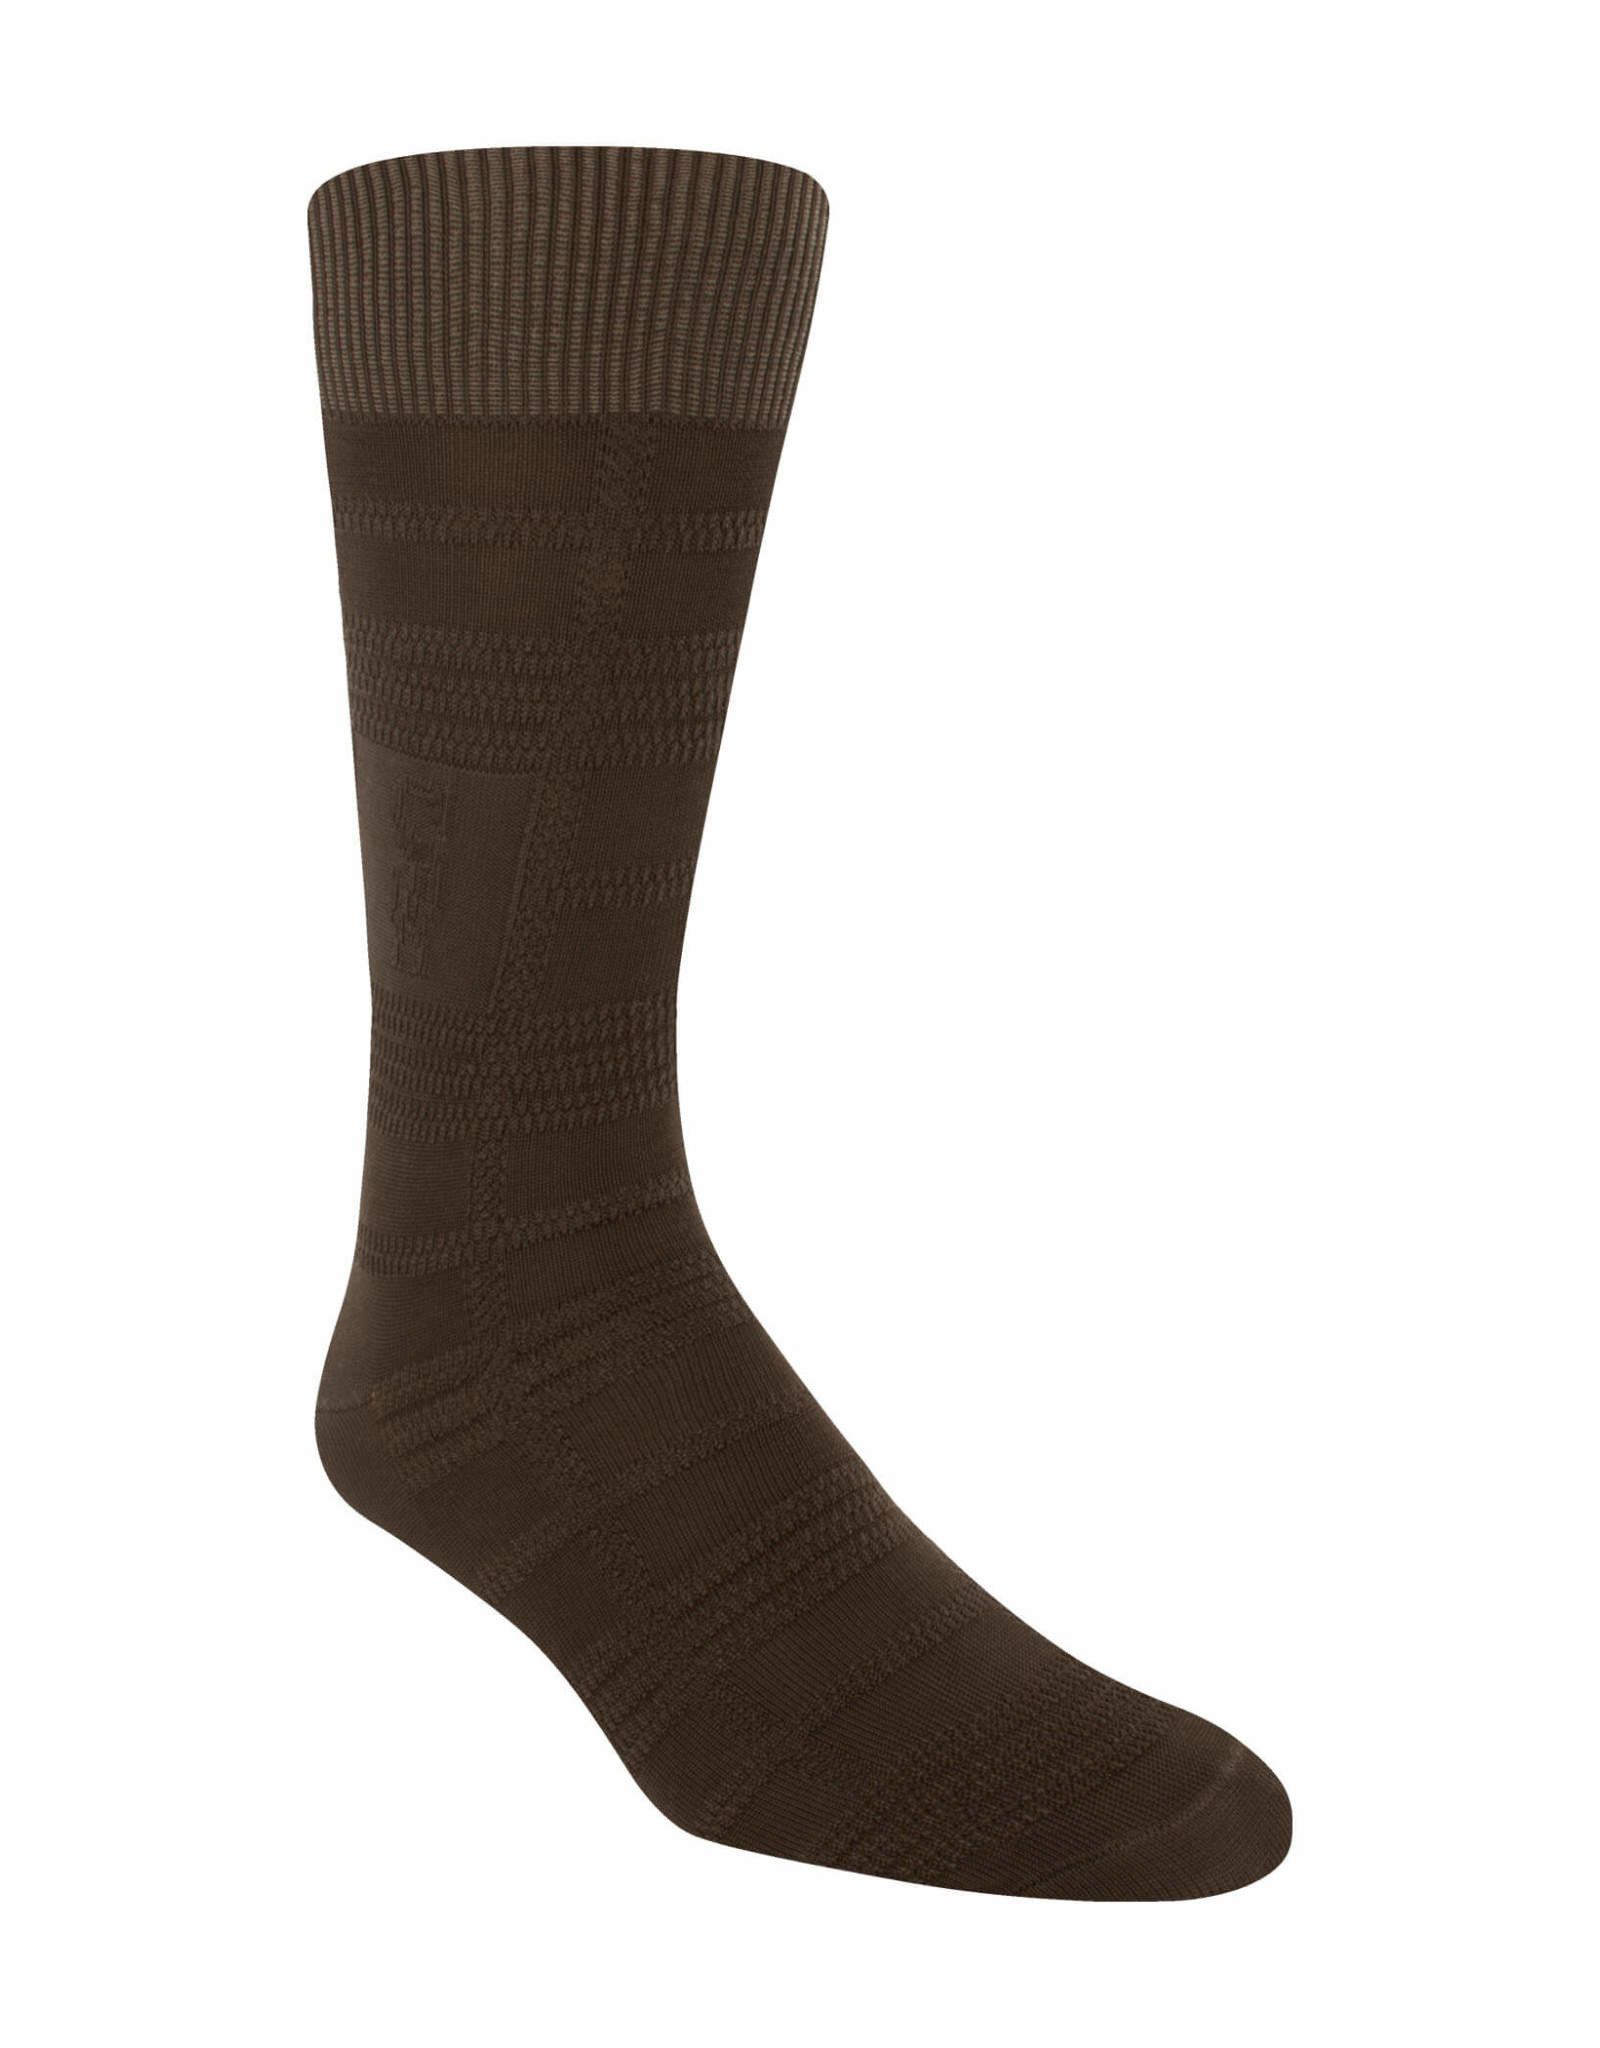 Stacy Adams Socks Stacy Adams Gemstone For Size 8-12.5 Brown